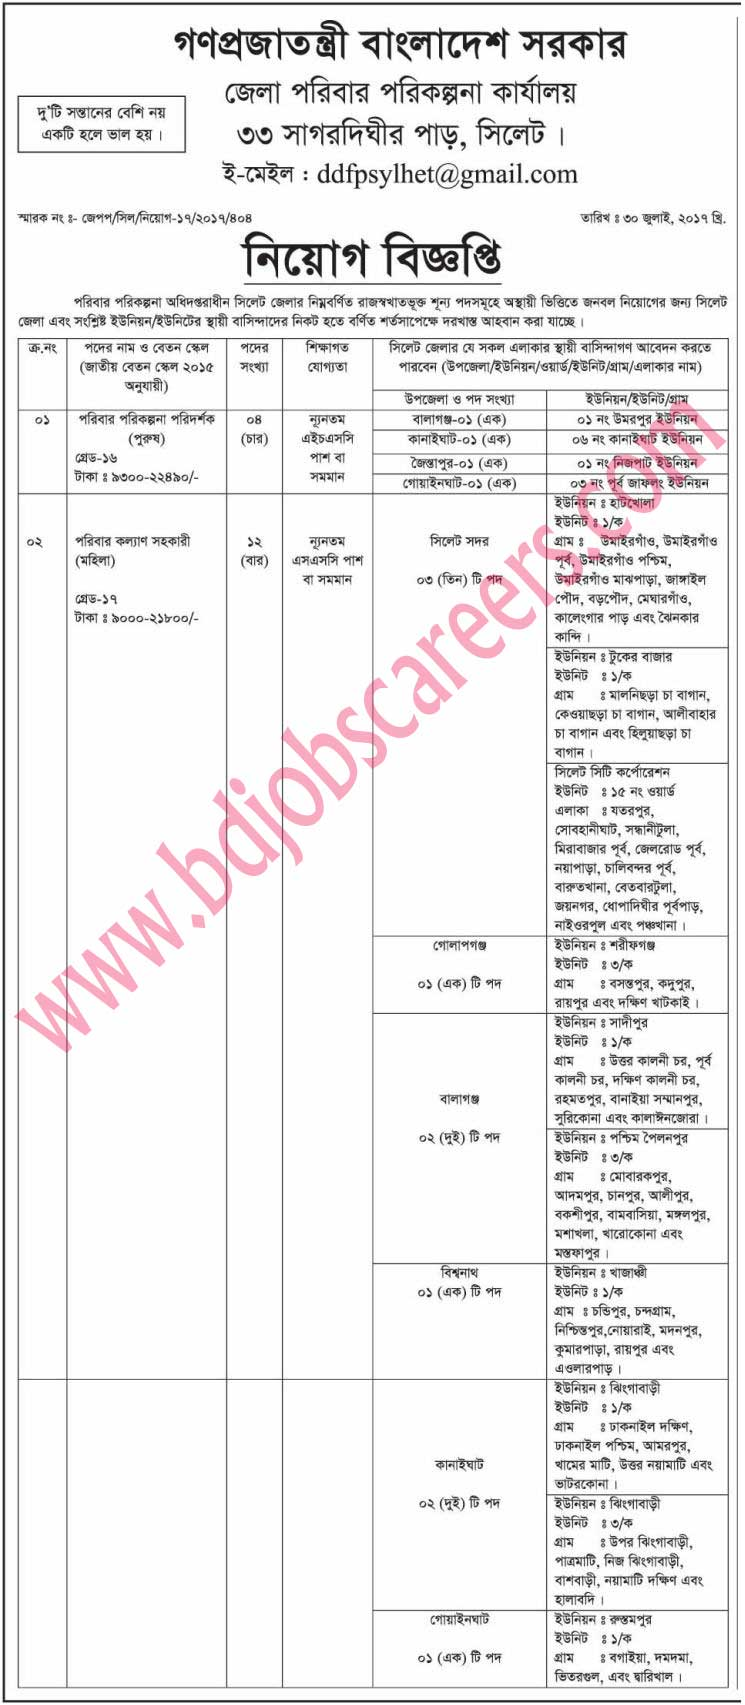 Sylhet District Family Planning Office Job Circular 2017